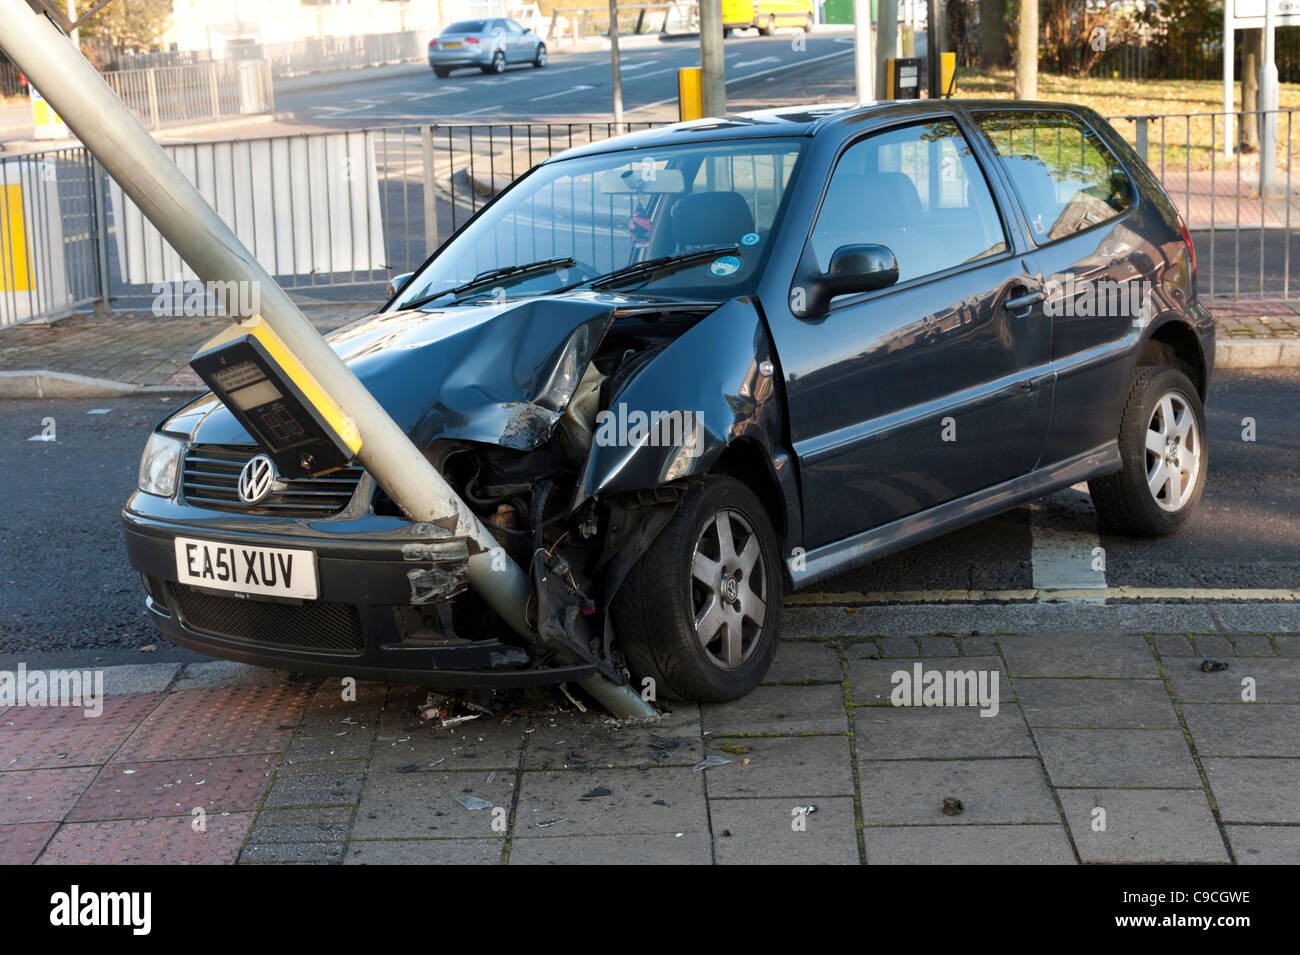 Volkswagen crashed into traffic light, London, England, UK - Stock Image